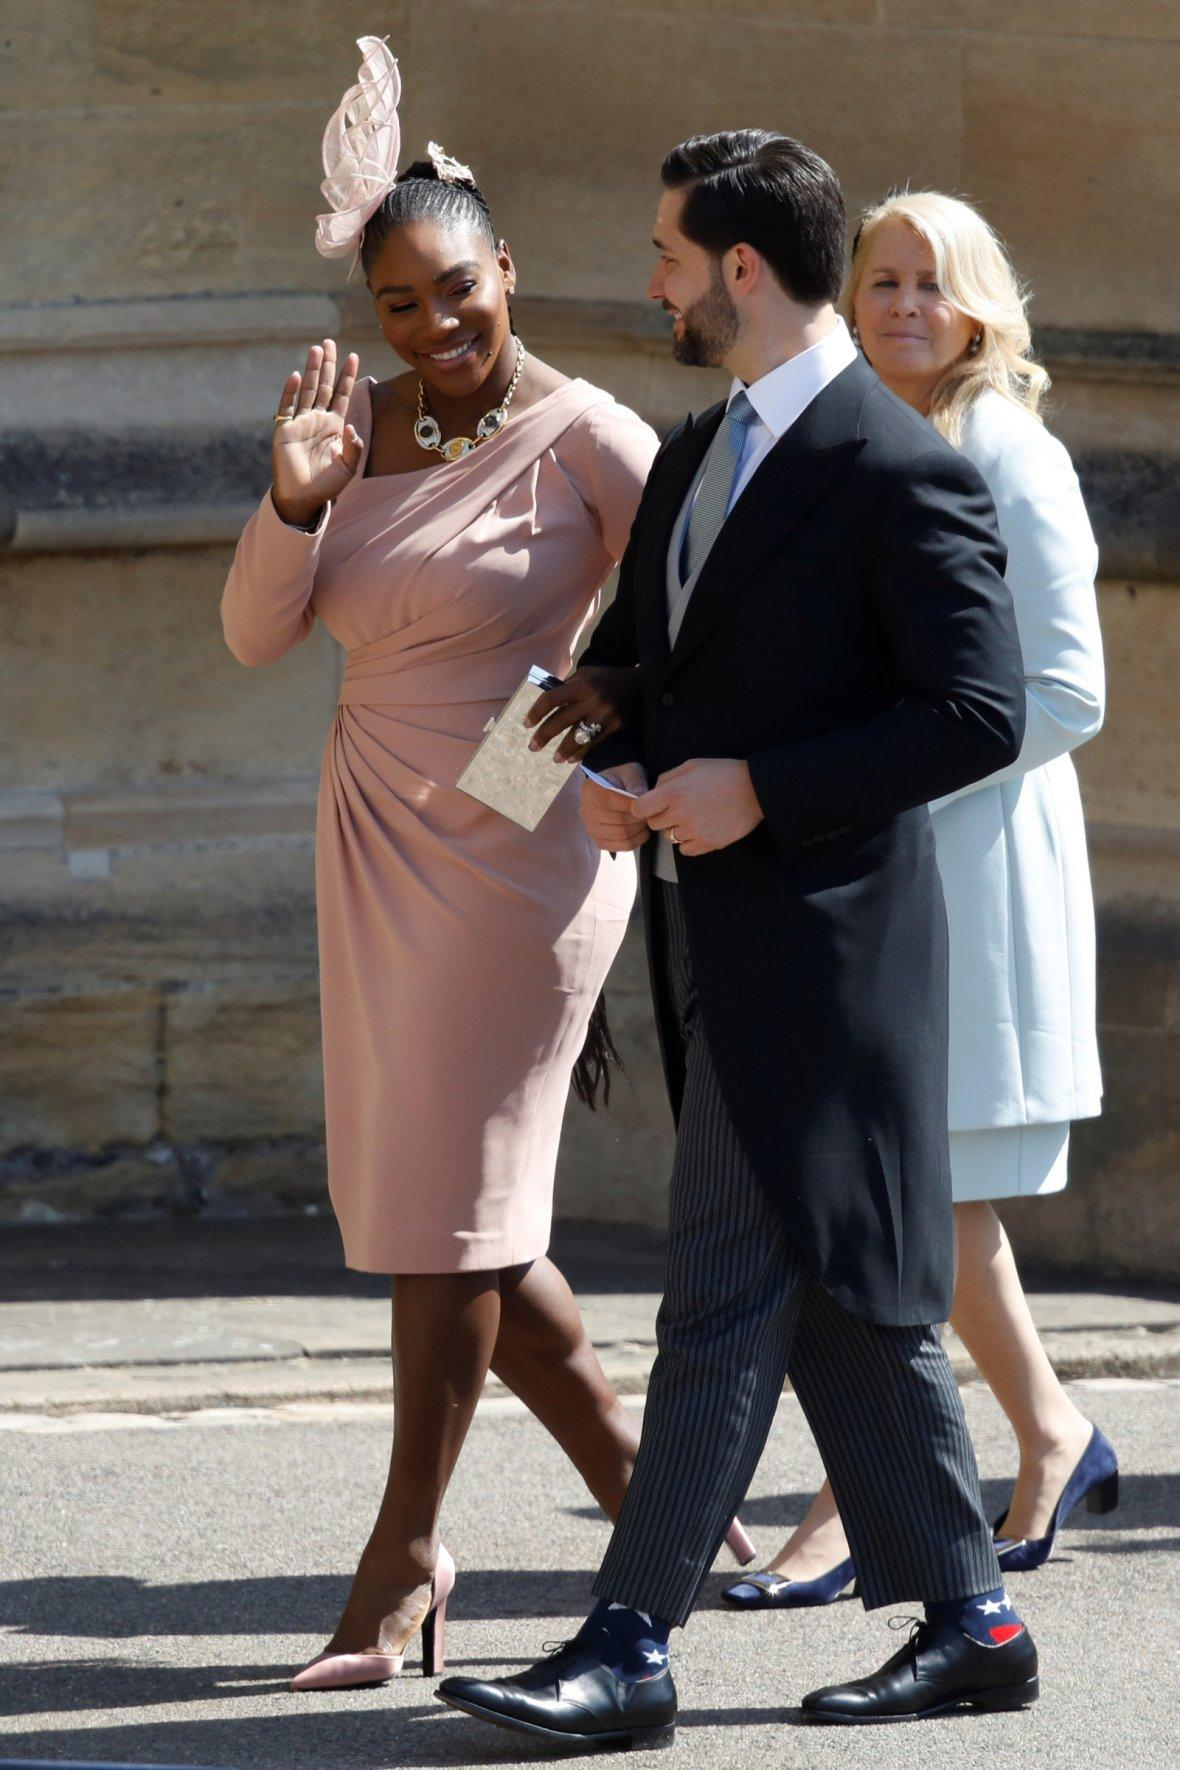 Meghan Markle's friend, US tennis player Serena Williams (L) and her husband US entrepreneur Alexis Ohanian (R) arrive for the wedding ceremony